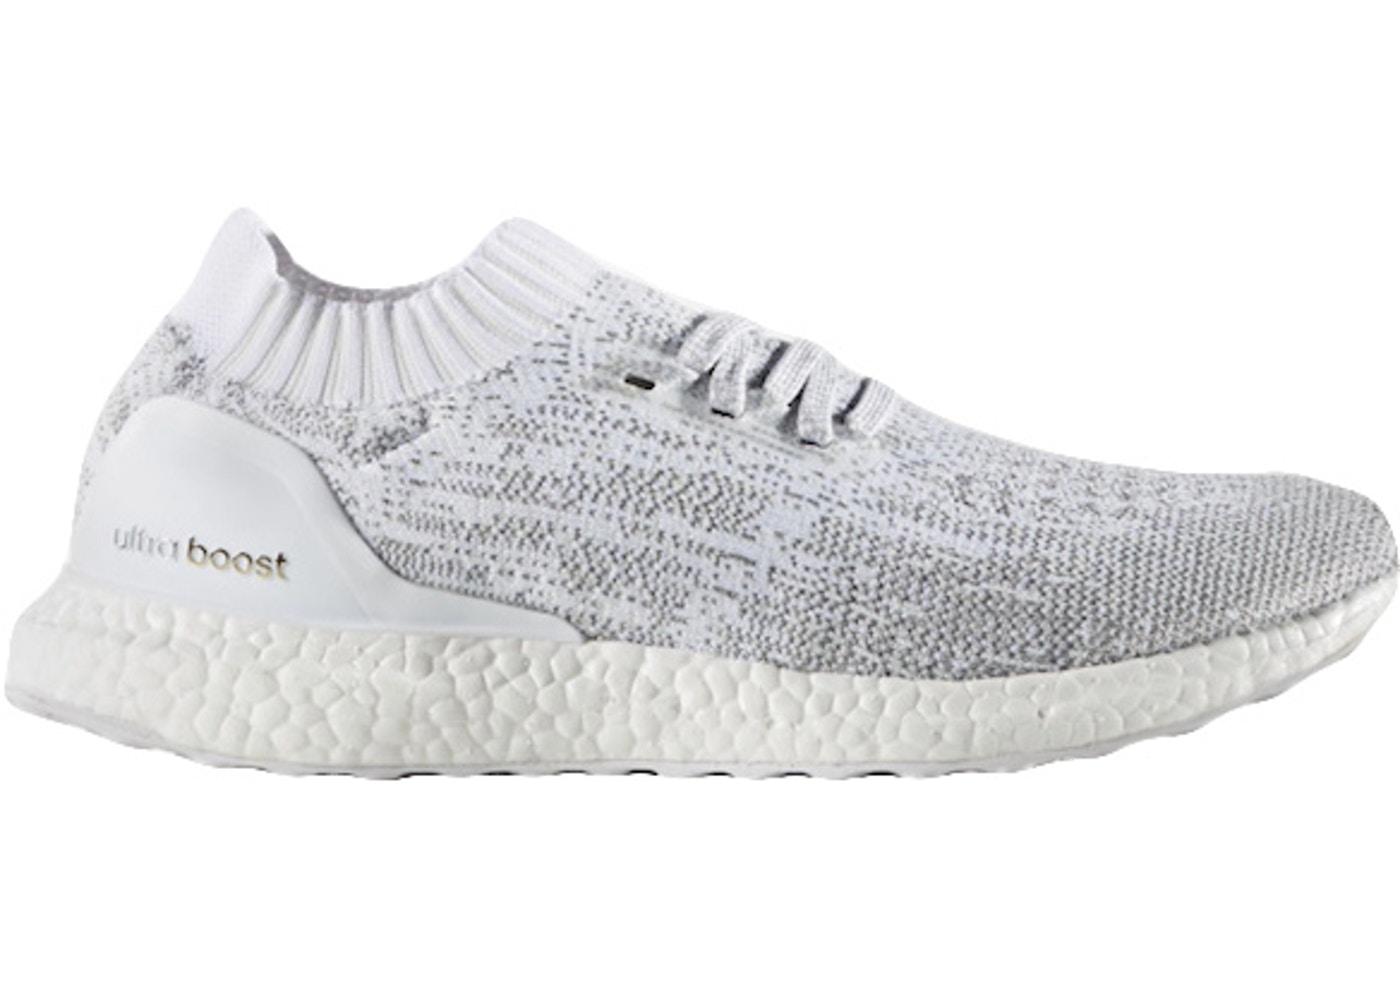 9c479592 adidas Ultra Boost Size 5 Shoes - Last Sale